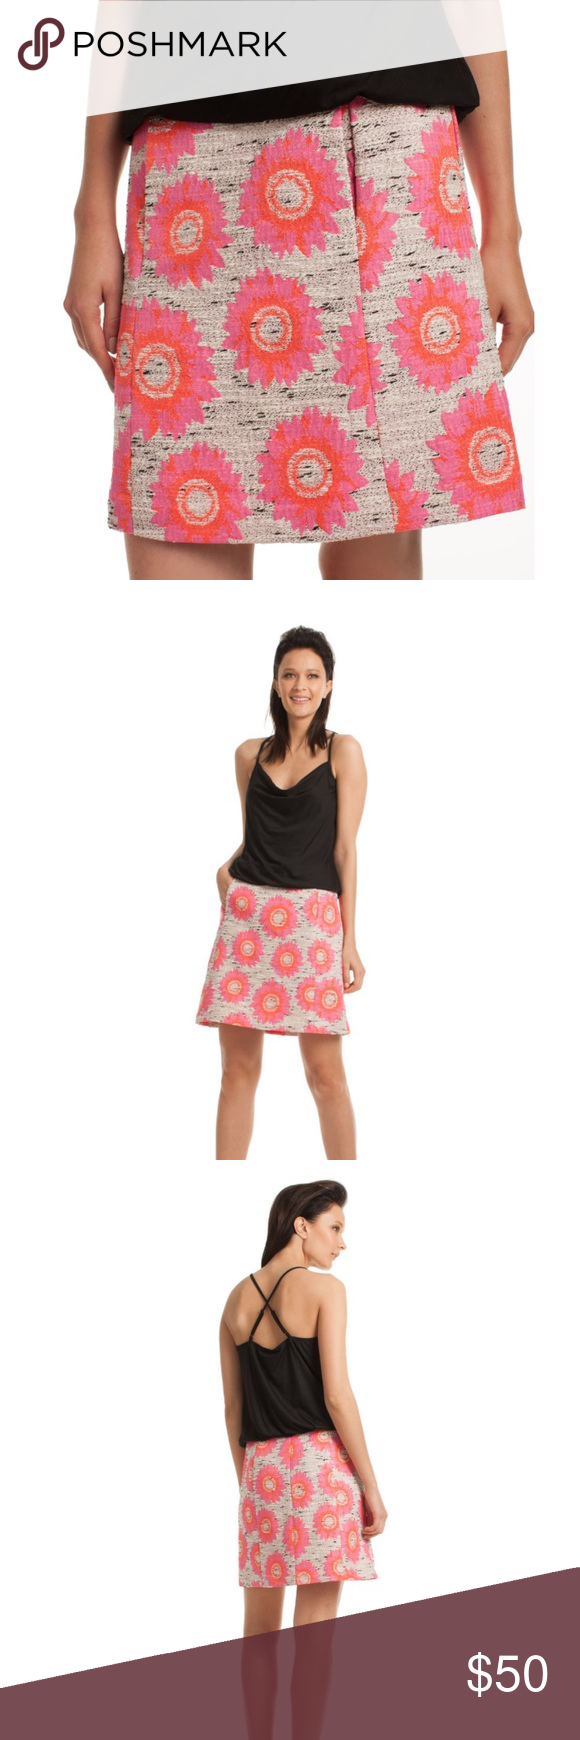 """Trina Turk Margo Textured Skirt In a chic, lightweight jacquard and a bright happy floral, the Margo Skirt makes getting dressed for pre-fall fun. With pockets and a-line silhouette, your daytime look is in stylish bloom. 19"""" Length Hidden back zipper Unlined 60% Polyester, 29% Cotton, 7% Nylon, 4% Acrylic Dry Clean. Very good condition. Have matching jacket shown in last picture. Note- skirt and jacket are slightly different in color. One is slightly lighter, hardly noticeable when wearing…"""